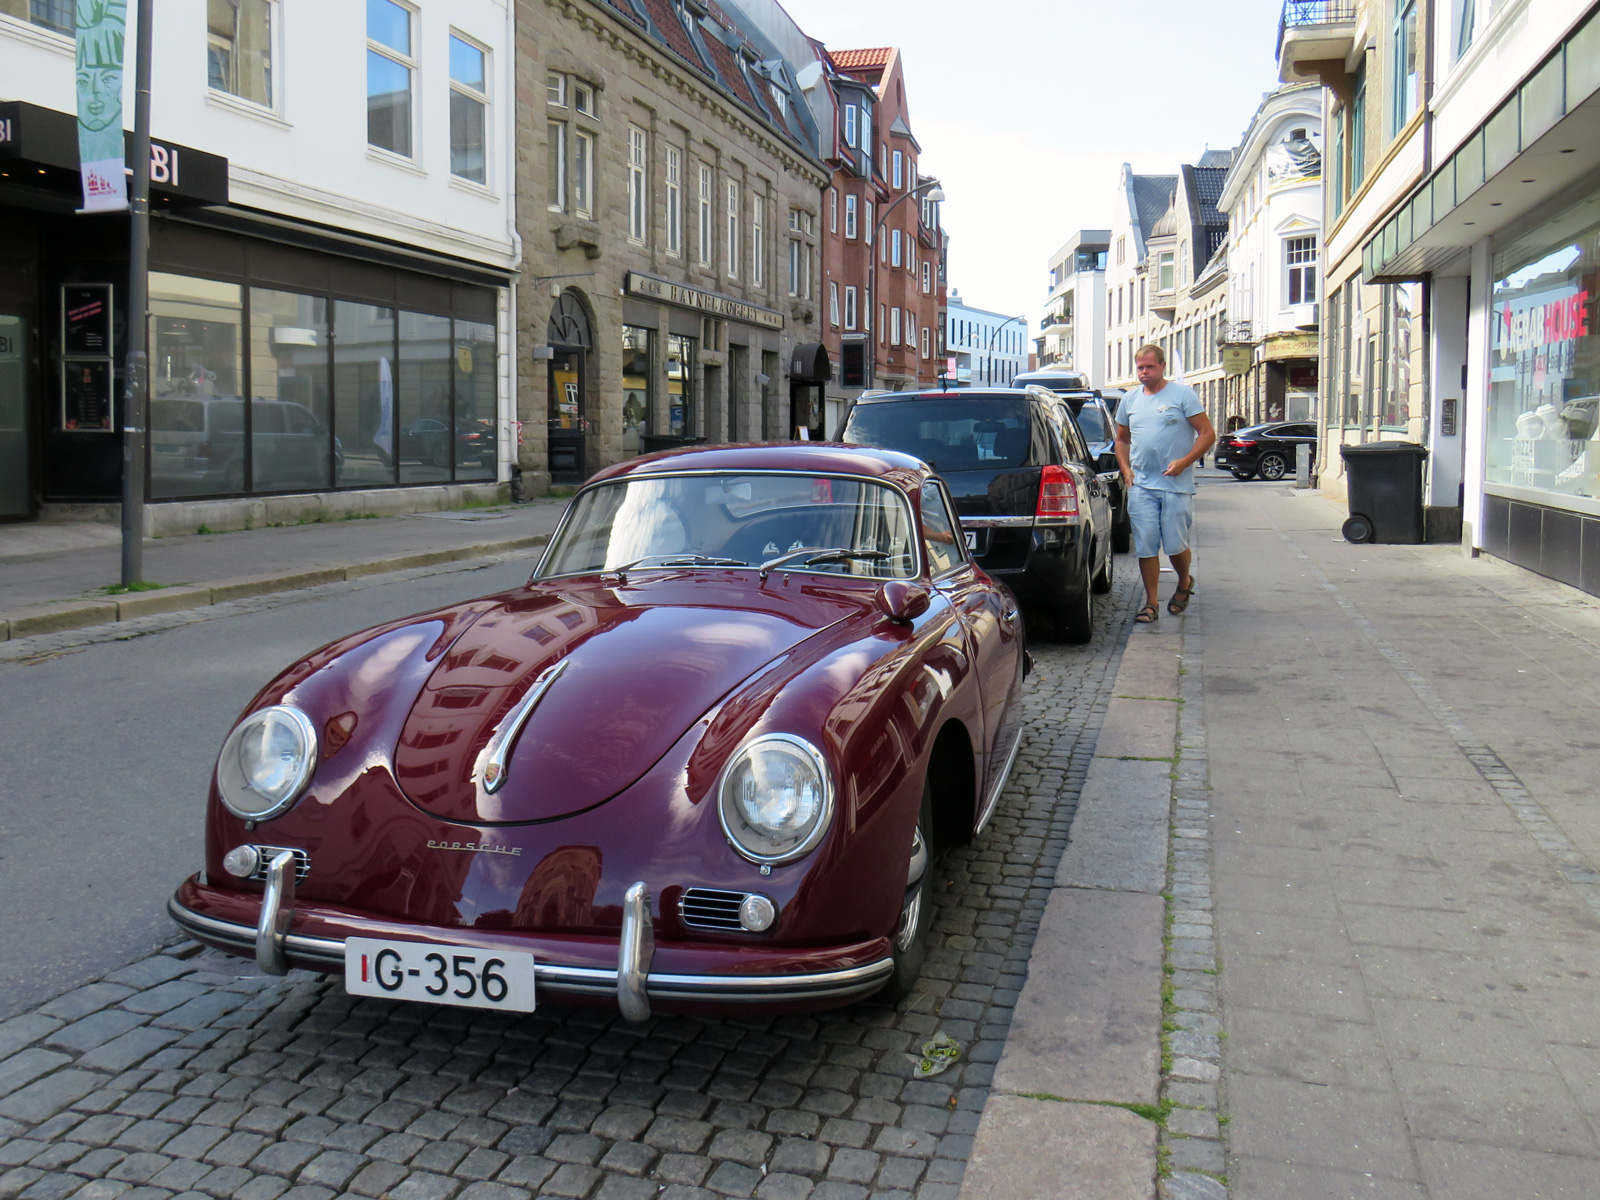 1957 Porsche 356 A Type 1 Sports car Norway